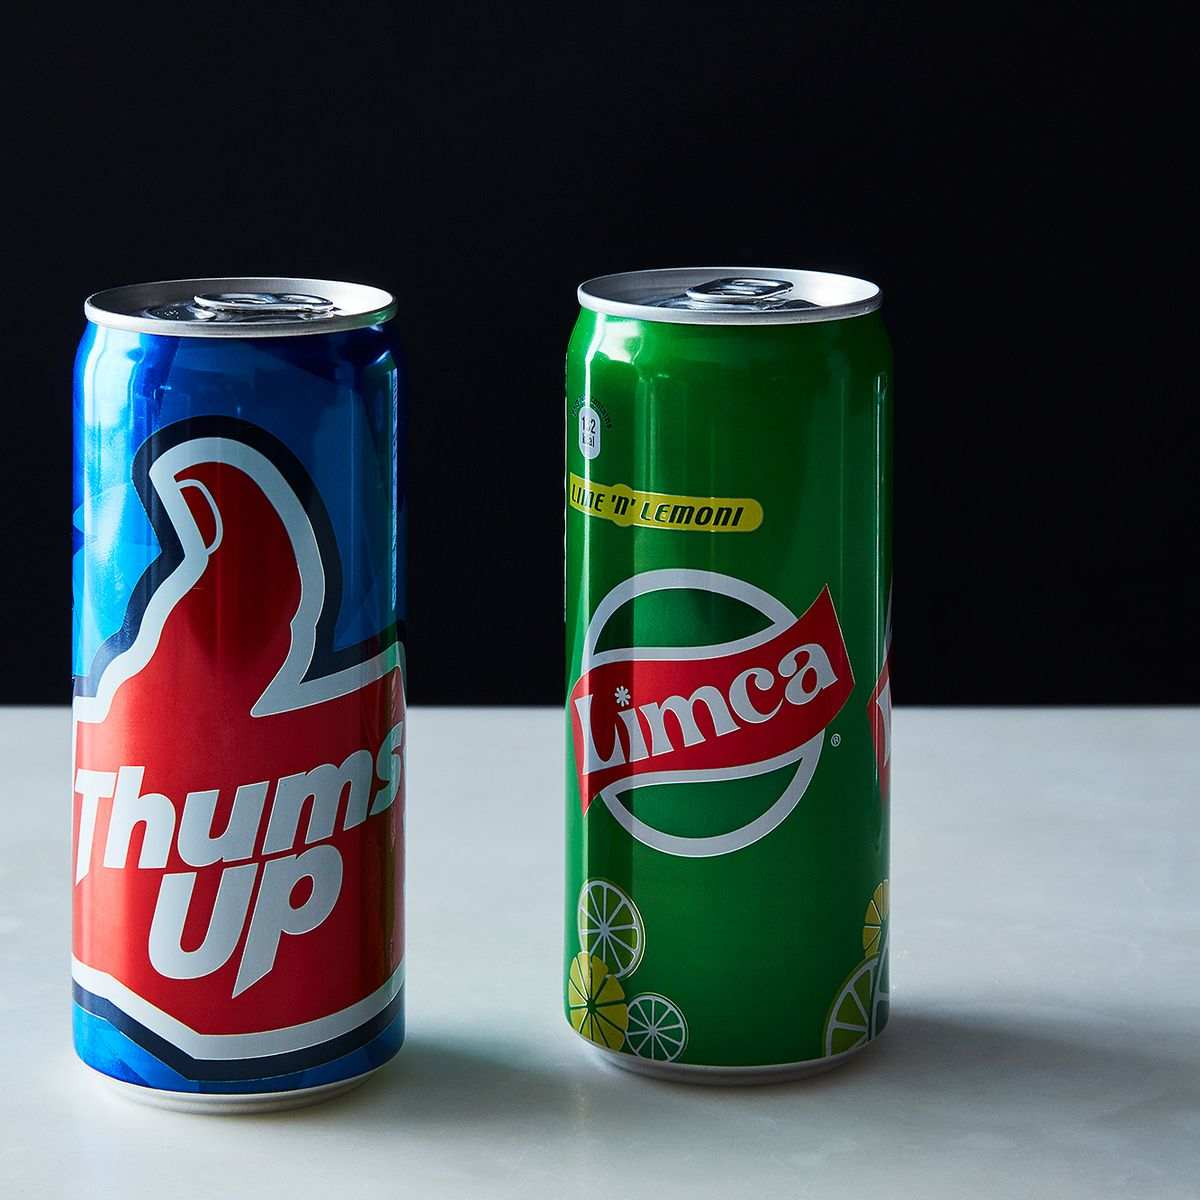 Thumps And Limca